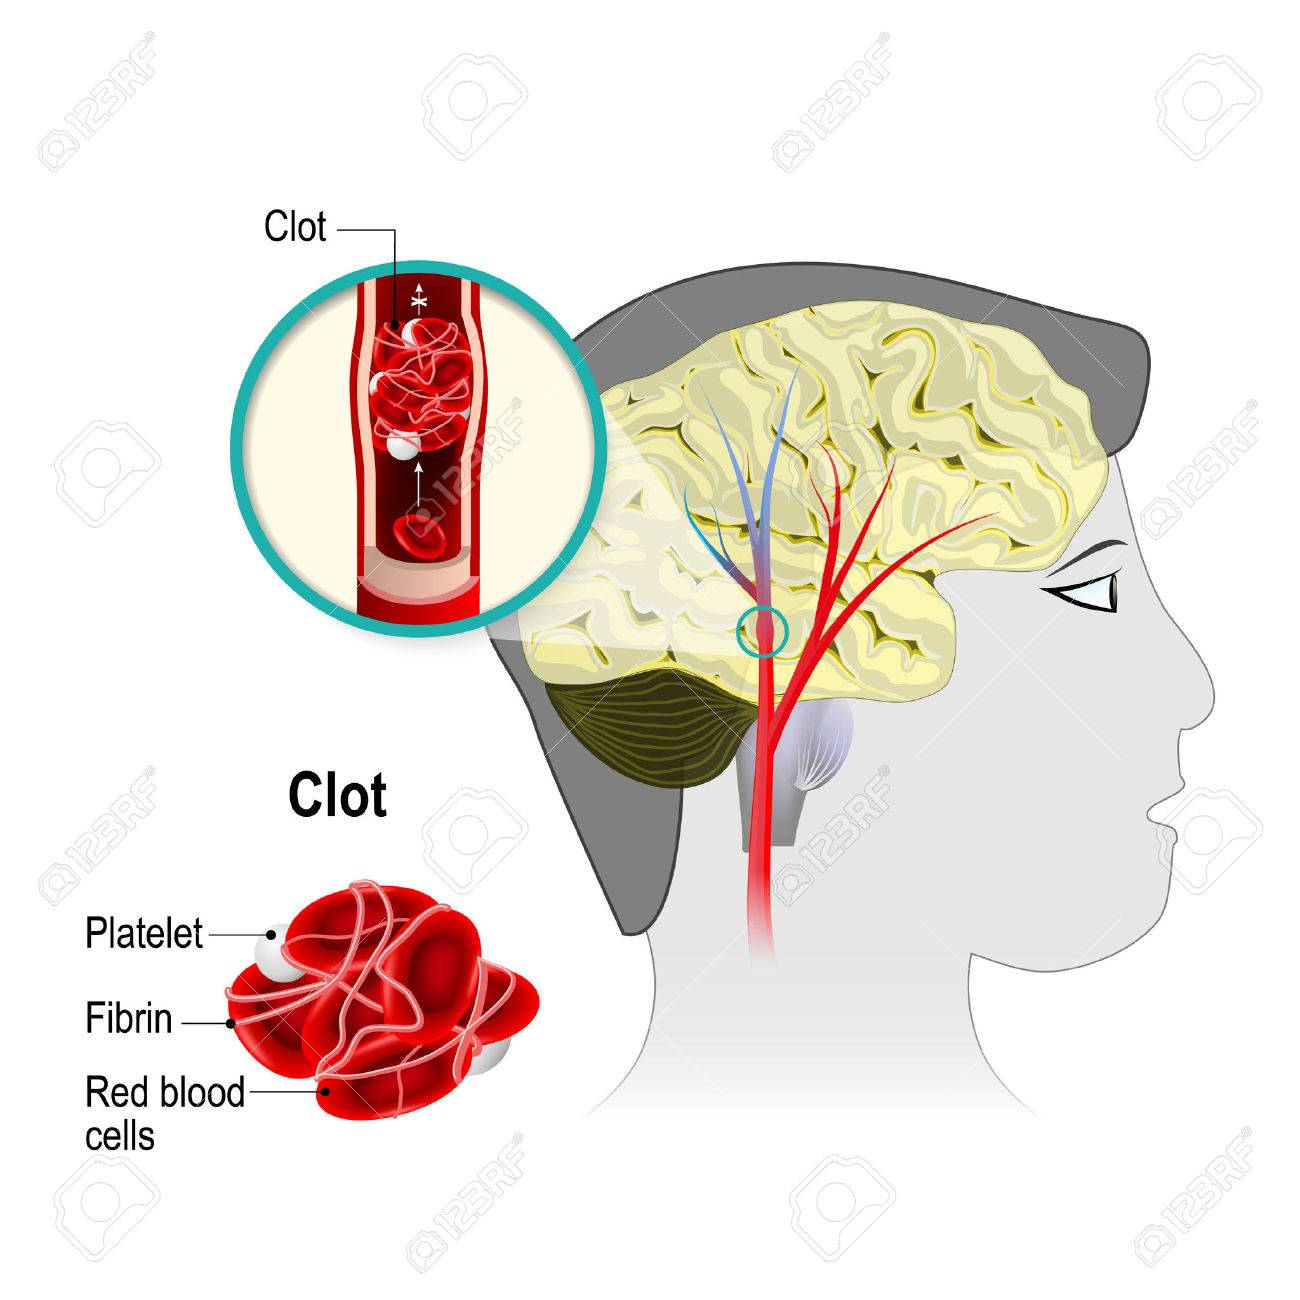 Cerebral infarction. brain stroke. the obstruction is caused by a blood clot that forms in a cerebral artery. Blood cells blocked of blood flow. Human anatomy. - 71630924